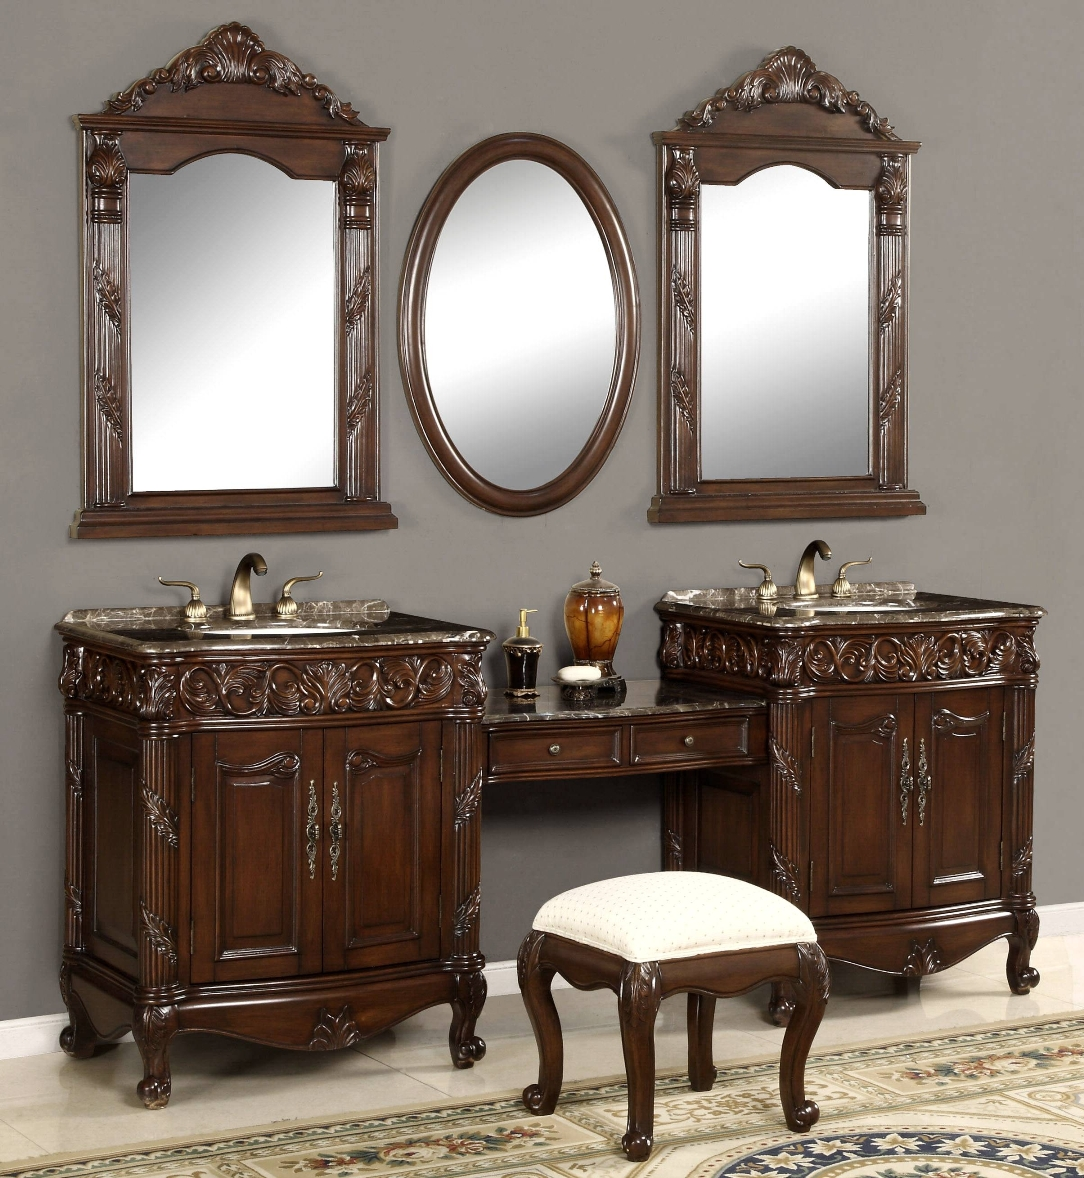 Makeup vanity for bathroom - Makeup Vanity For Bathroom 8